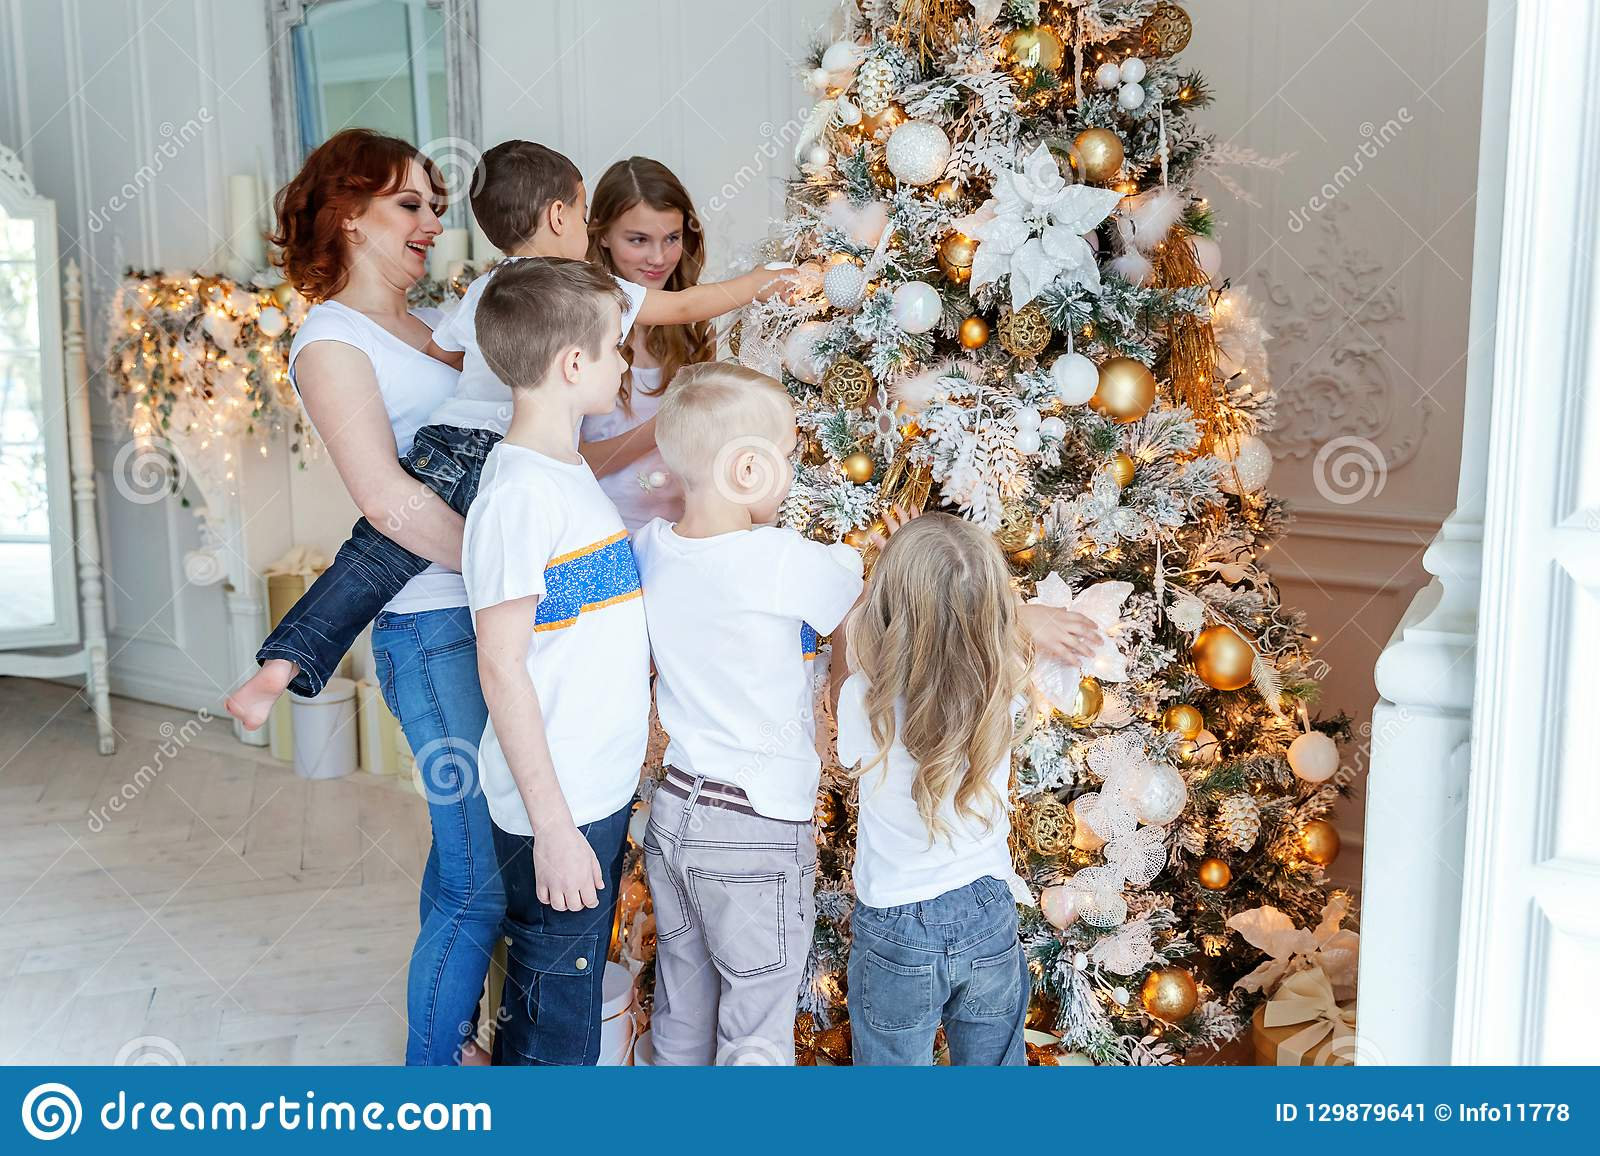 Mother and five children decorating Christmas tree at home